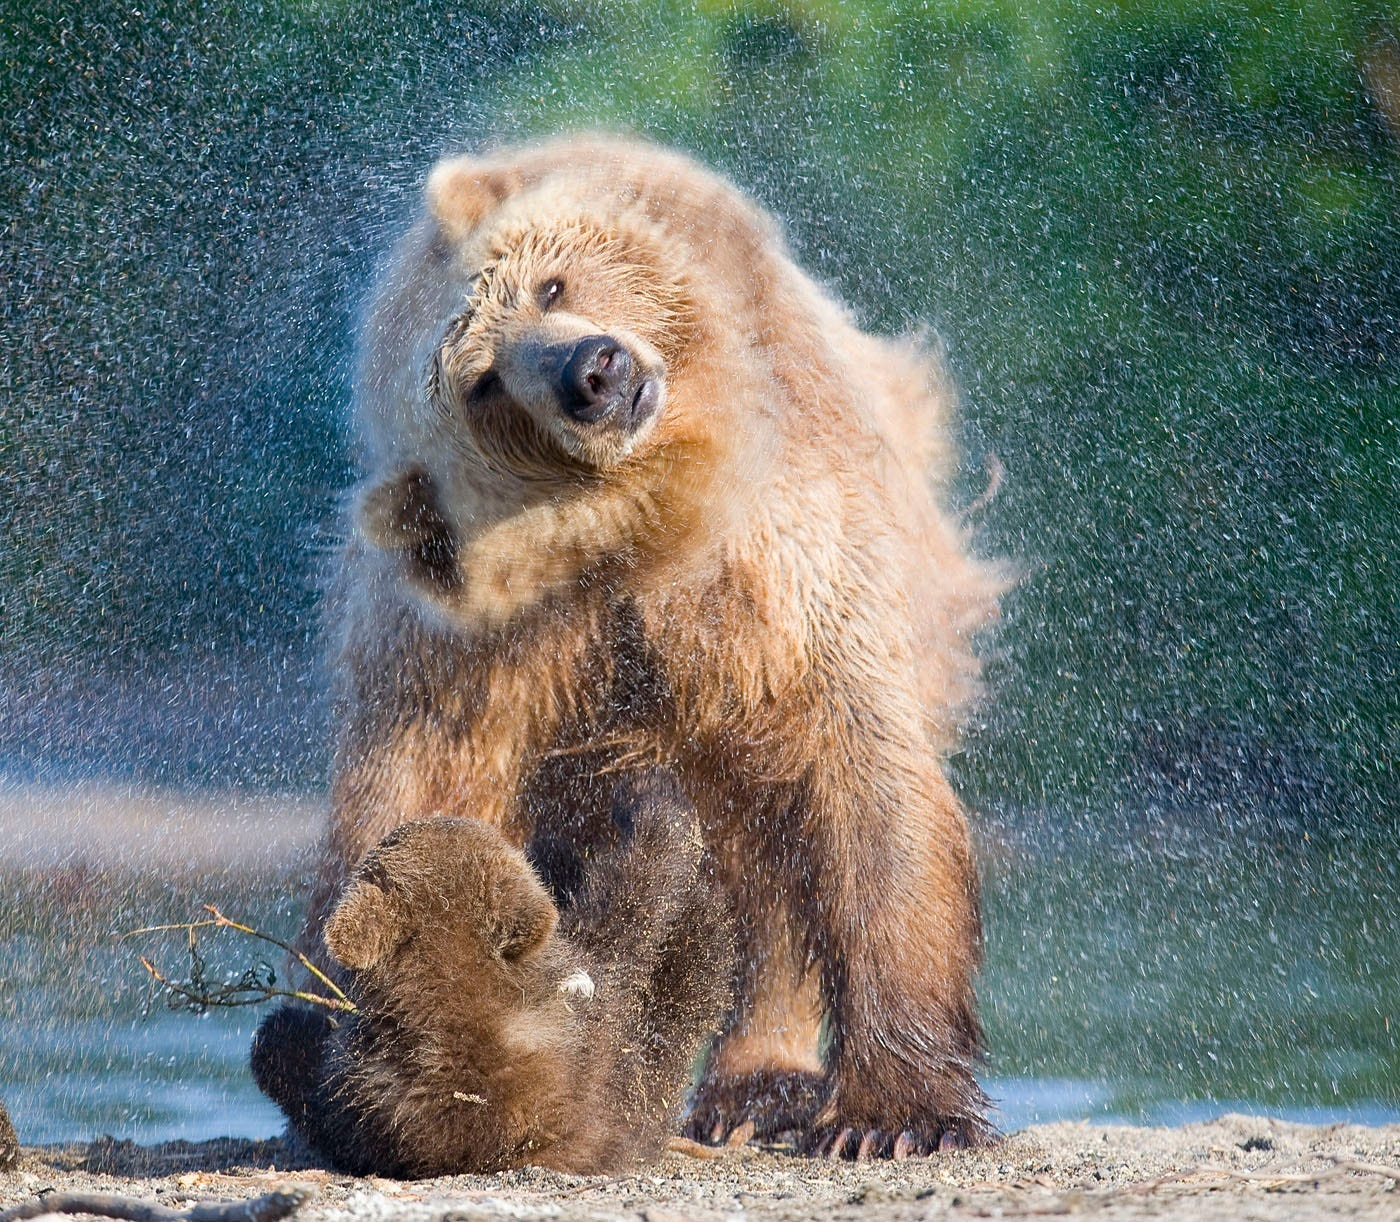 Ungentle charm of Kamchatka bears in photos by Sergey Ivanov - 3